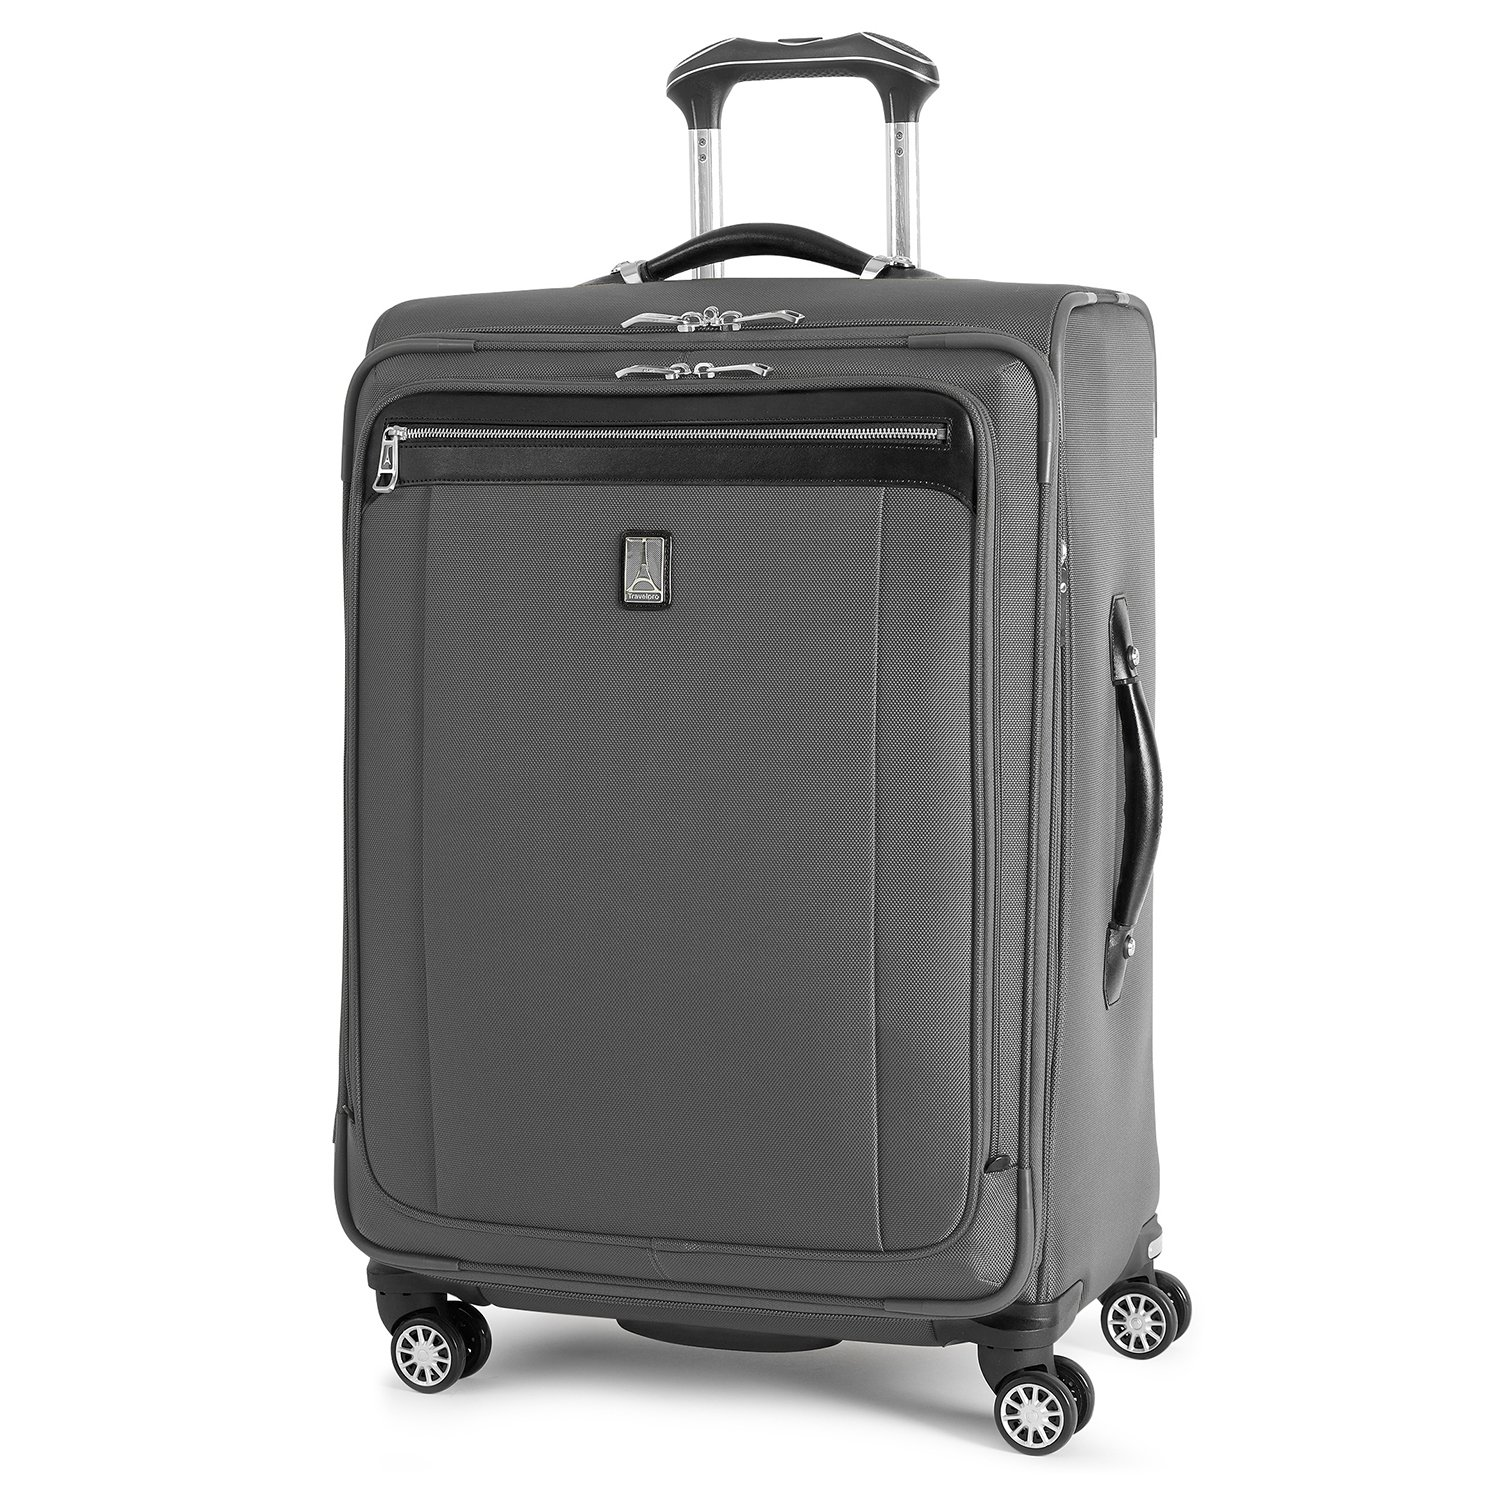 Travelpro Platinum Magna 2 Expandable Spinner Suiter Suitcase 25-in. , Charcoal Grey